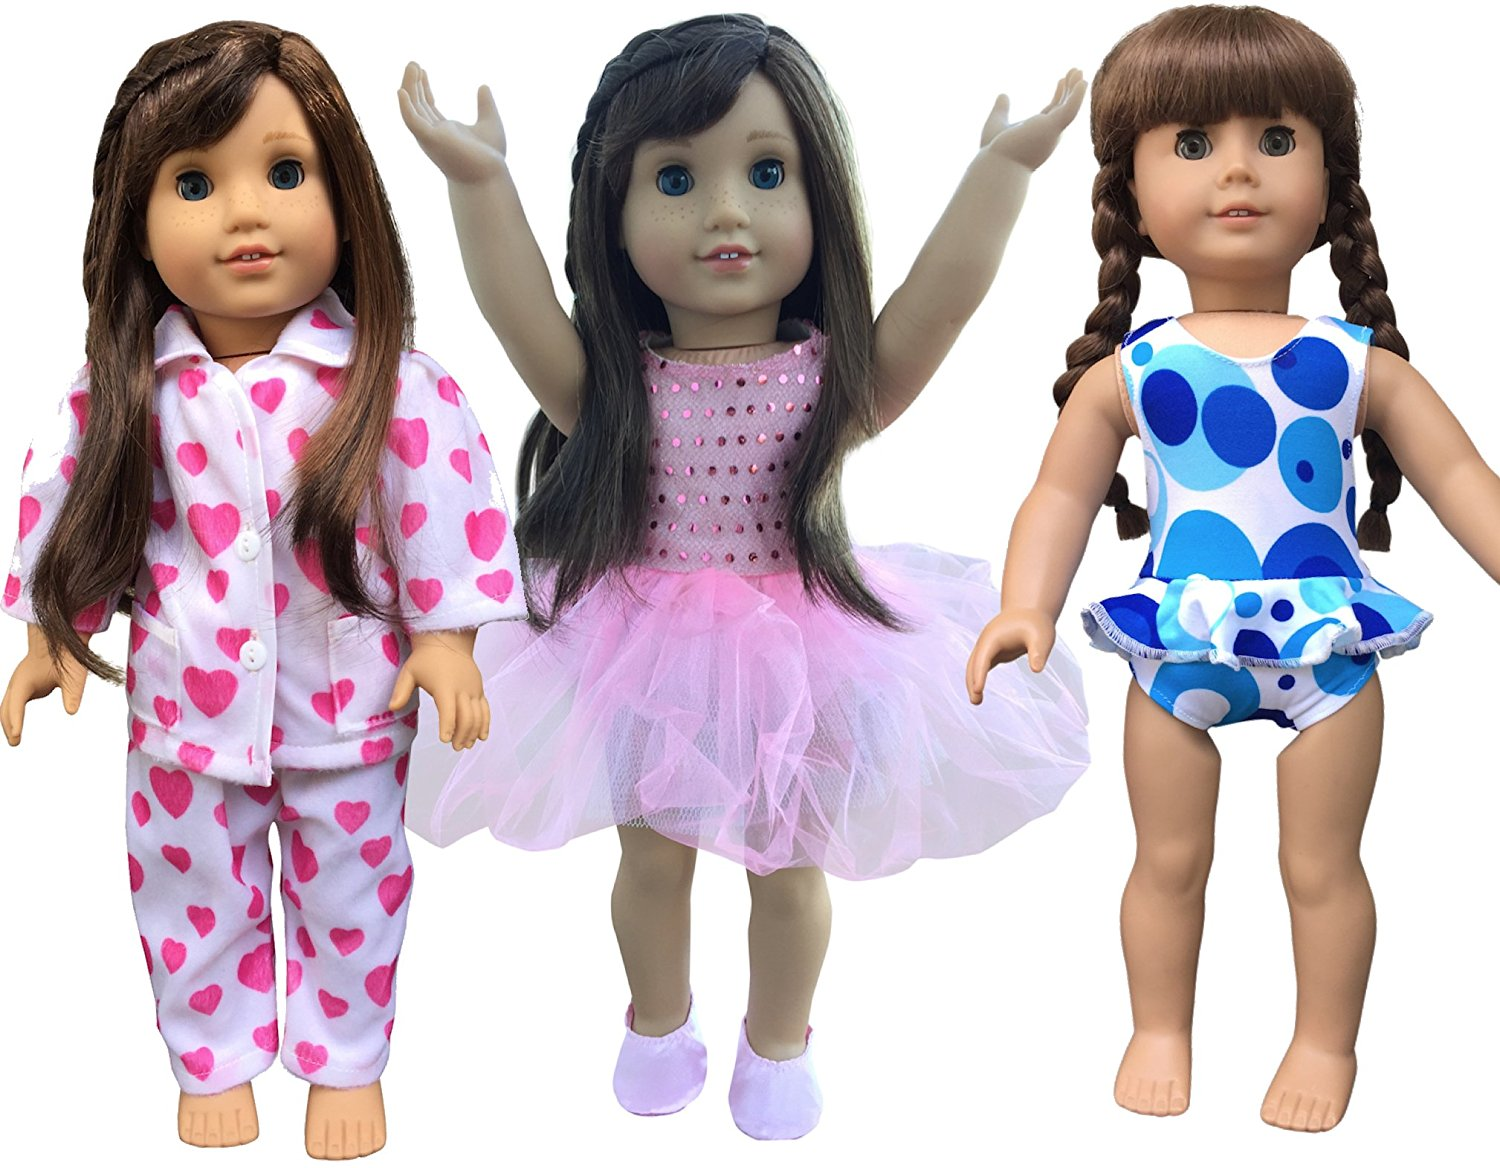 In-Style Doll Clothes for American Girl Dolls, 3 Outfits, 18-Inch, Ballet set by